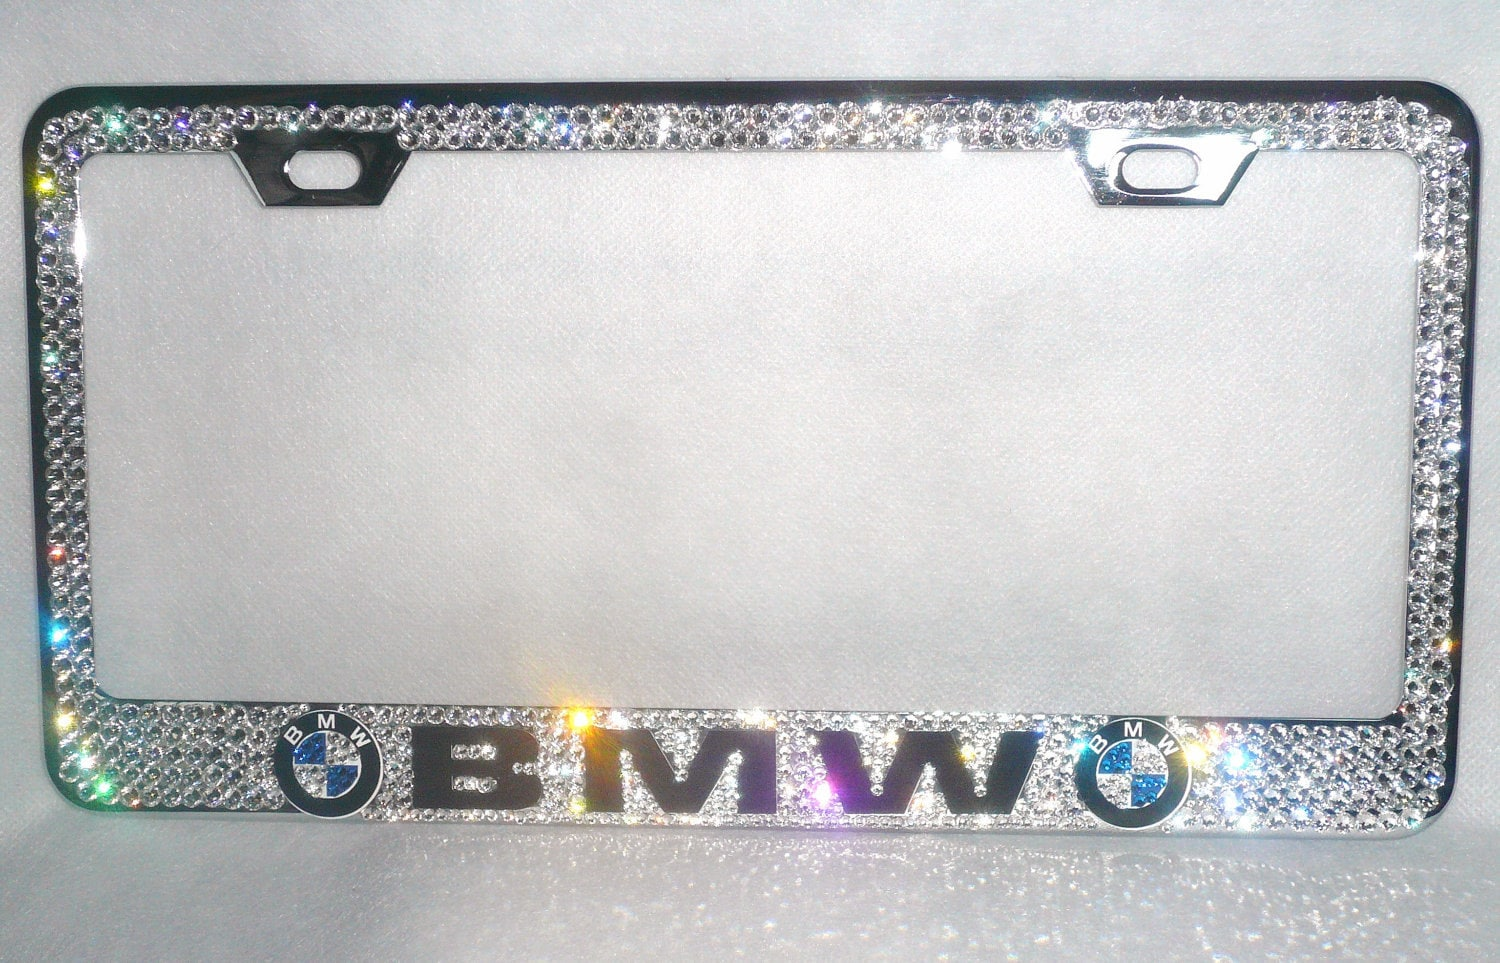 bmw swarovski crystal license plate frame bmw swarovski crystal license plate frame bmw swarovski crystal license plate frame